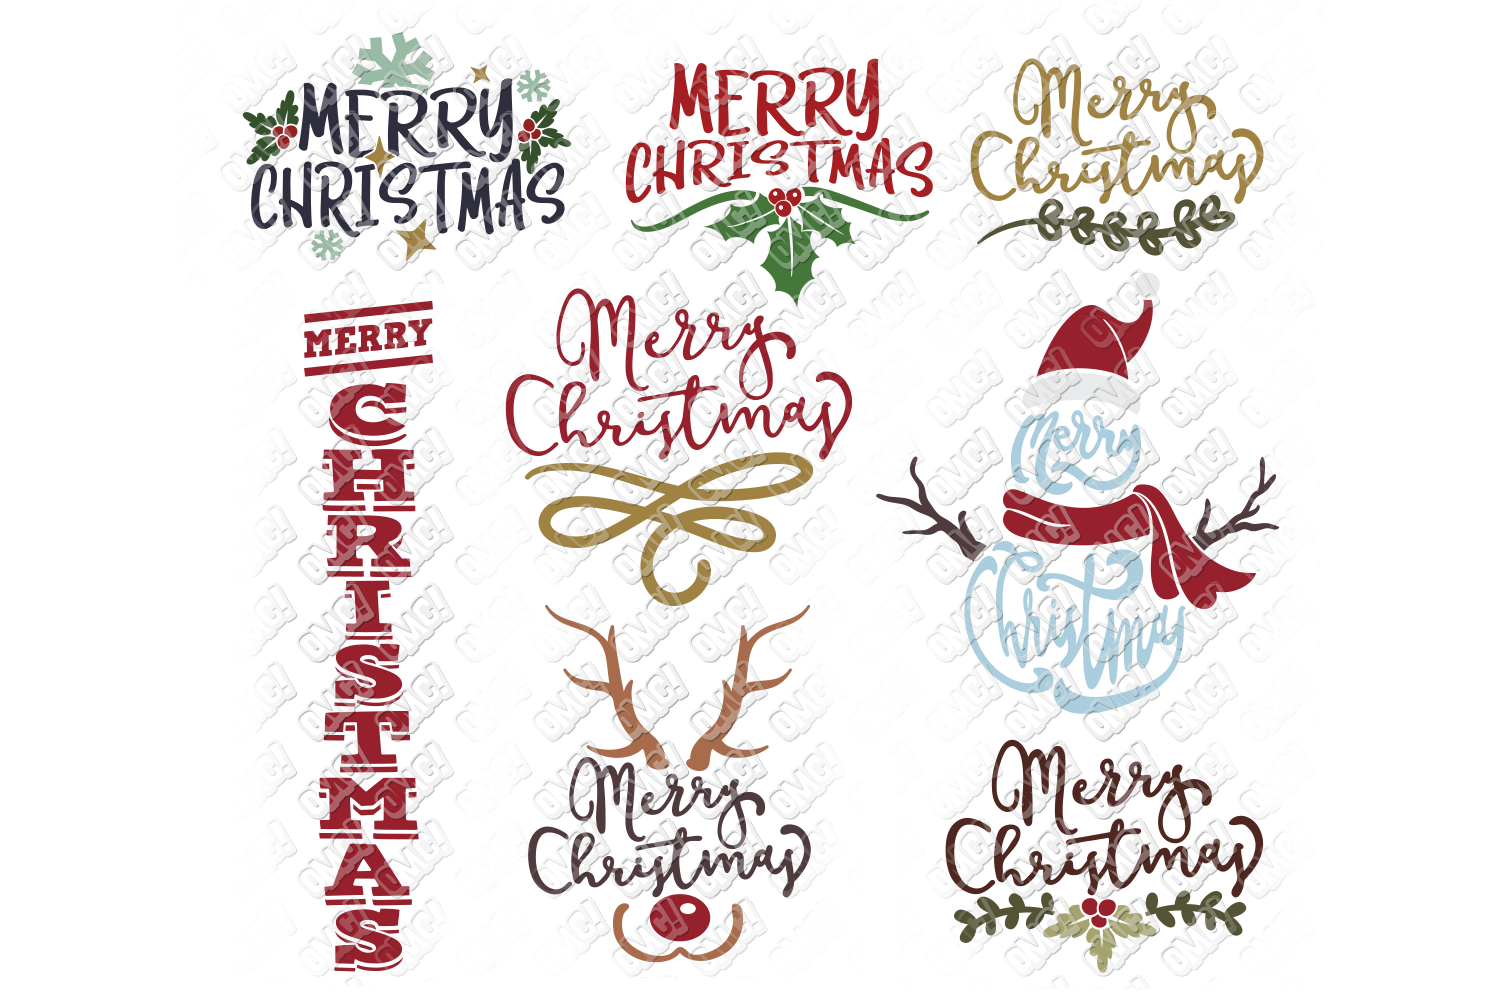 Merry Christmas Christian.Merry Christmas Svg Bundle In Svg Dxf Png Eps Jpeg